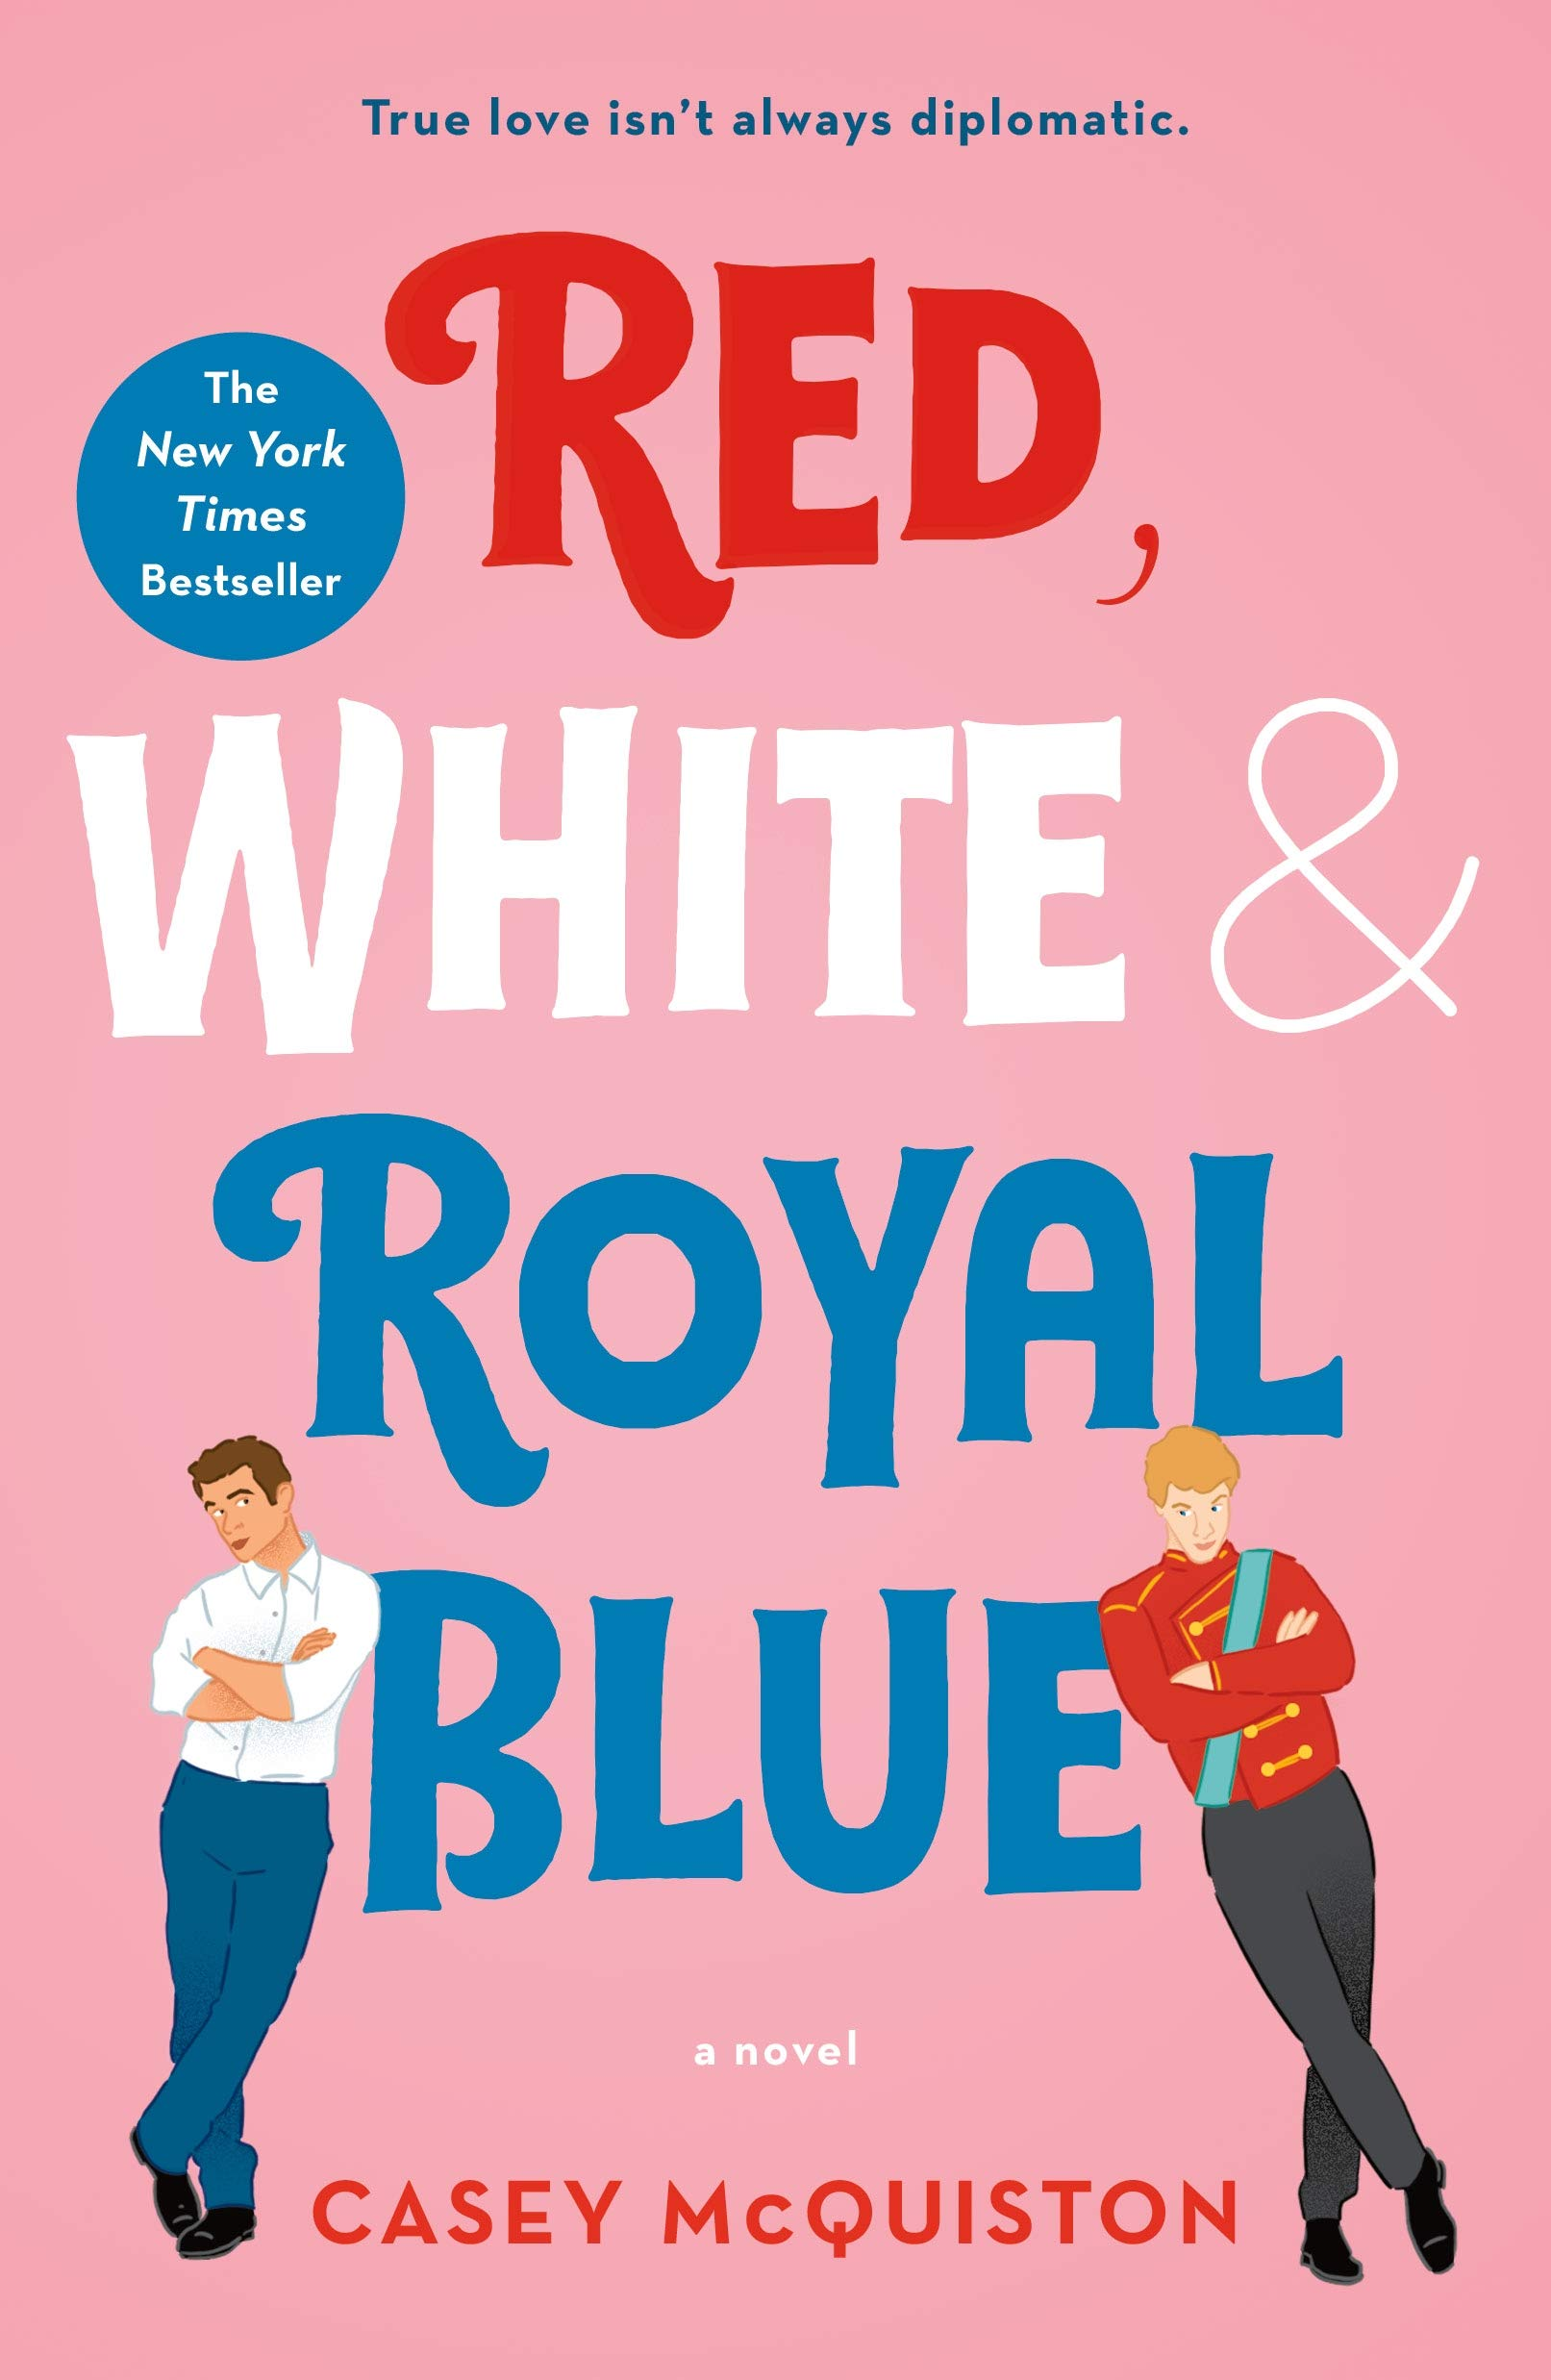 Photo of Red White and Royal Blue cover